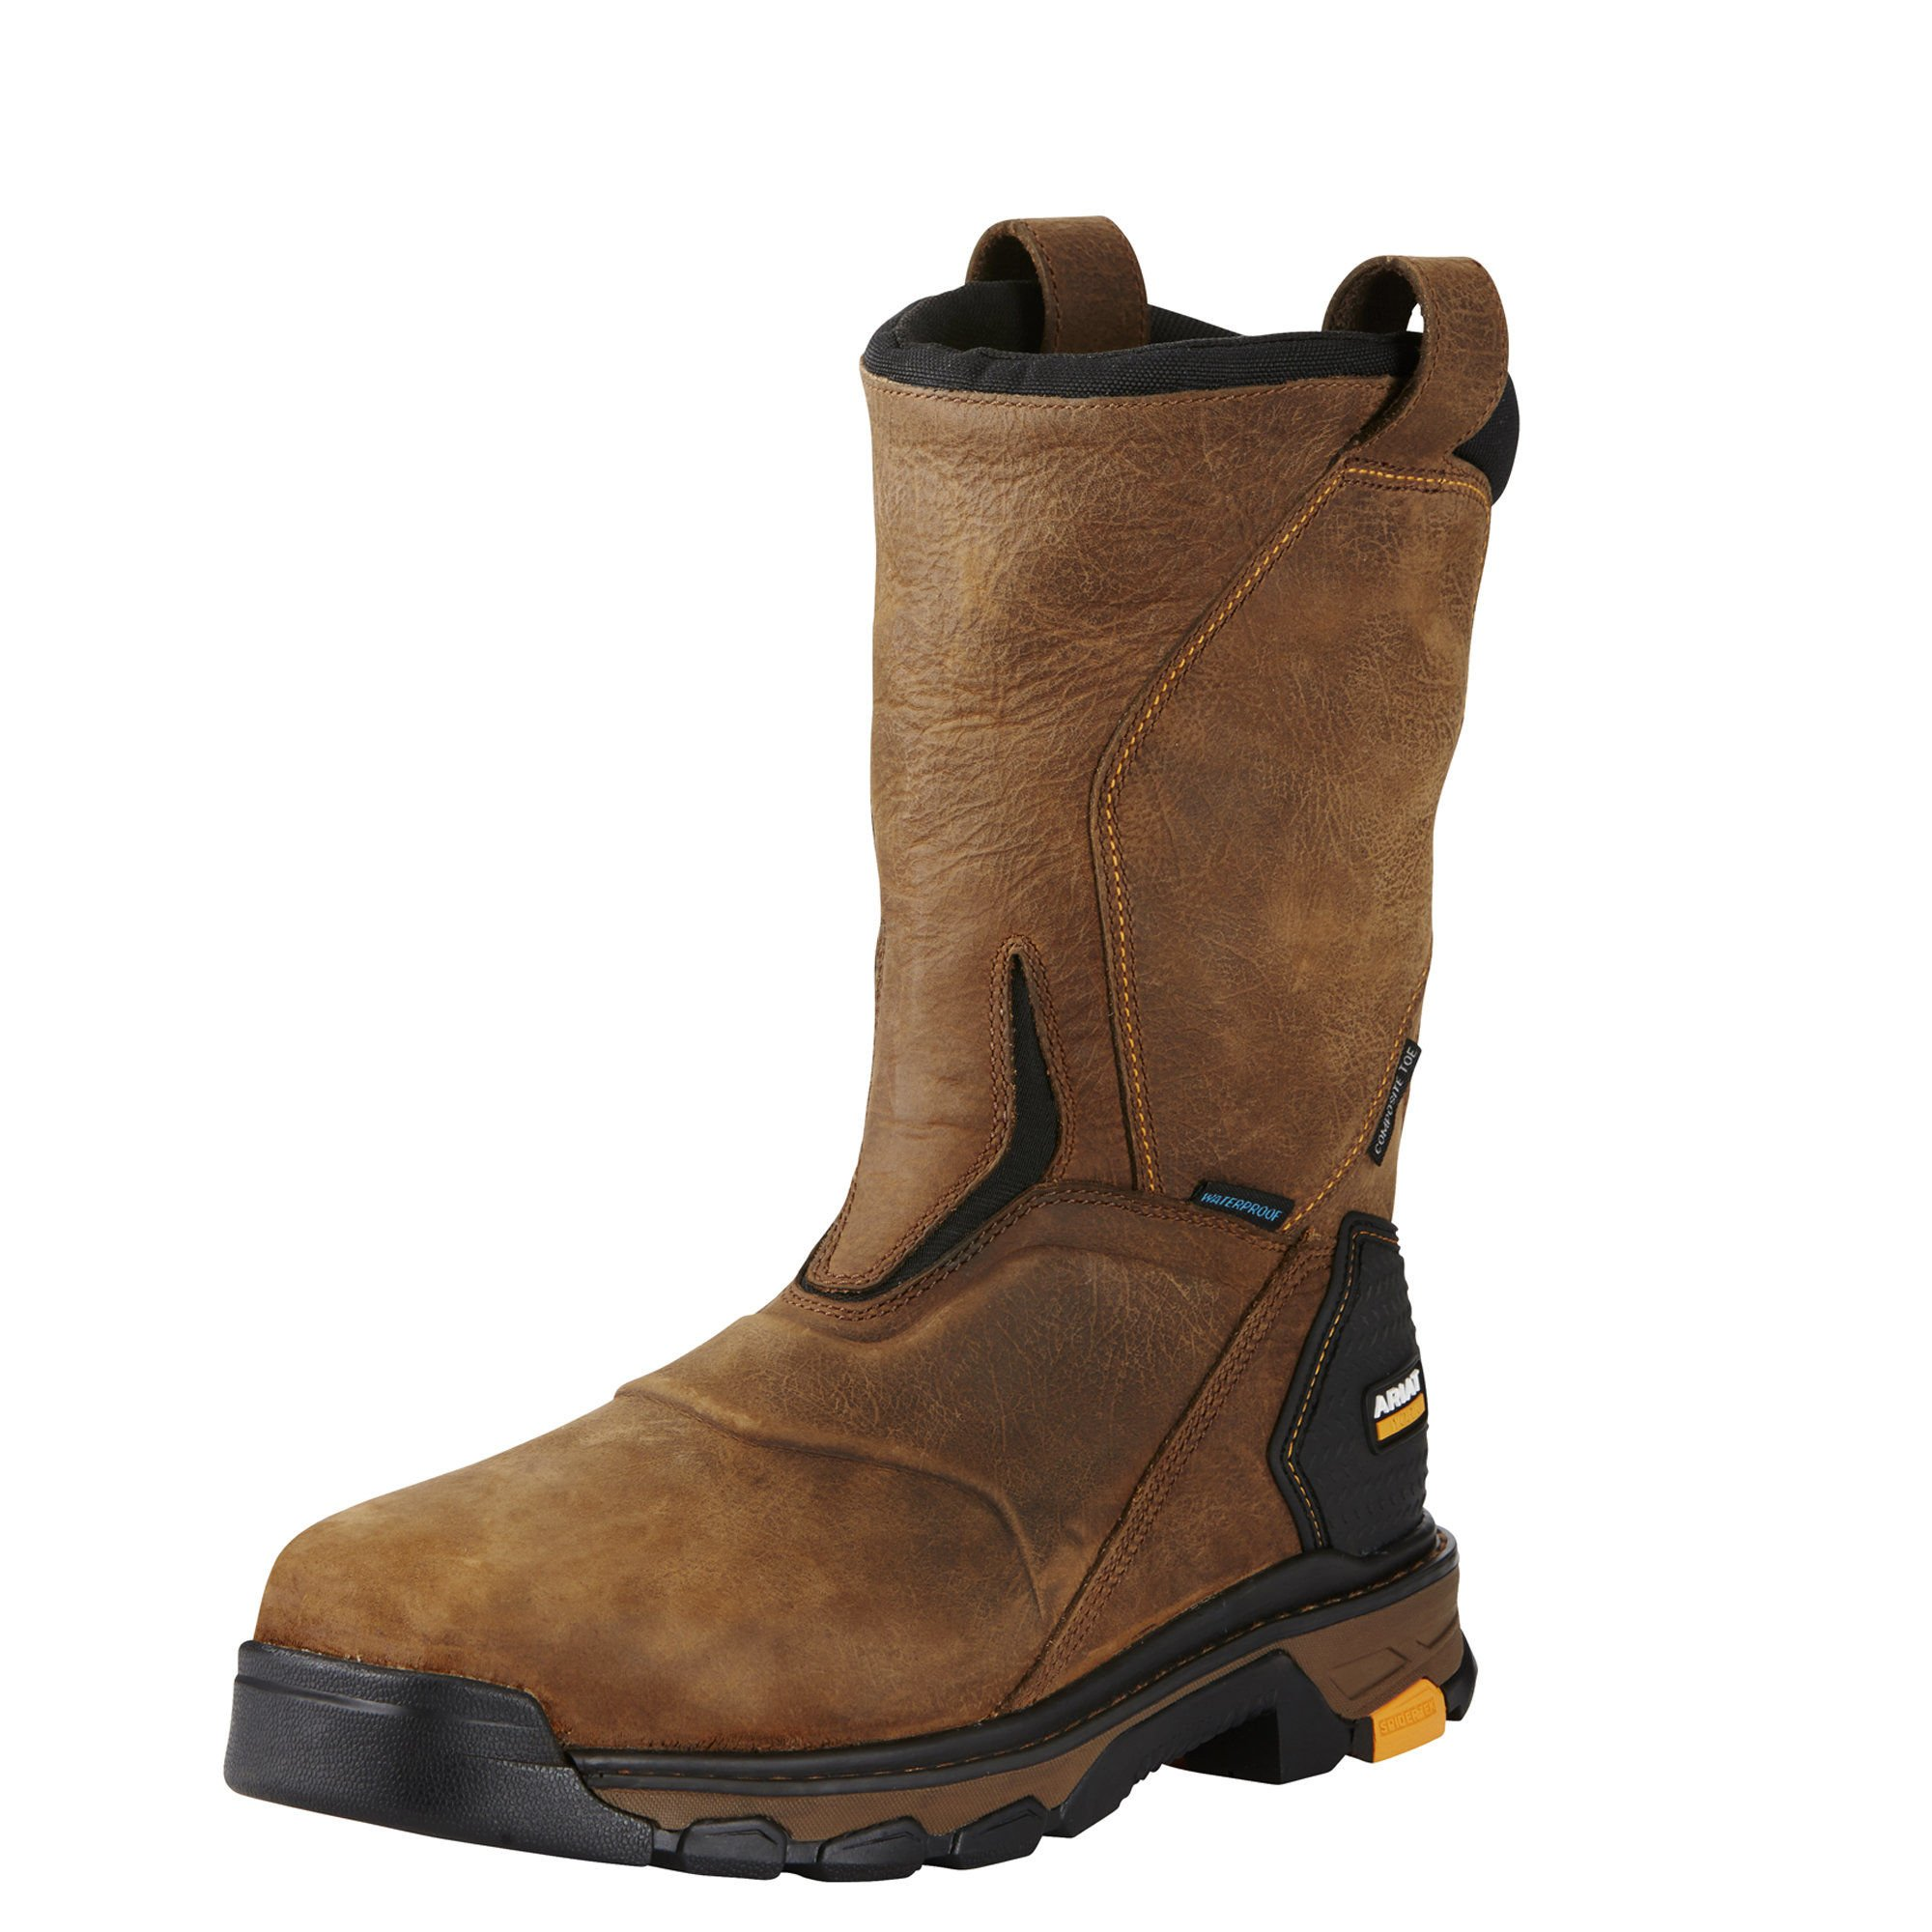 Ariat Work Men's Intrepid Pull-On H2O Composite Toe Work Boot, Rye Brown, 9 D US